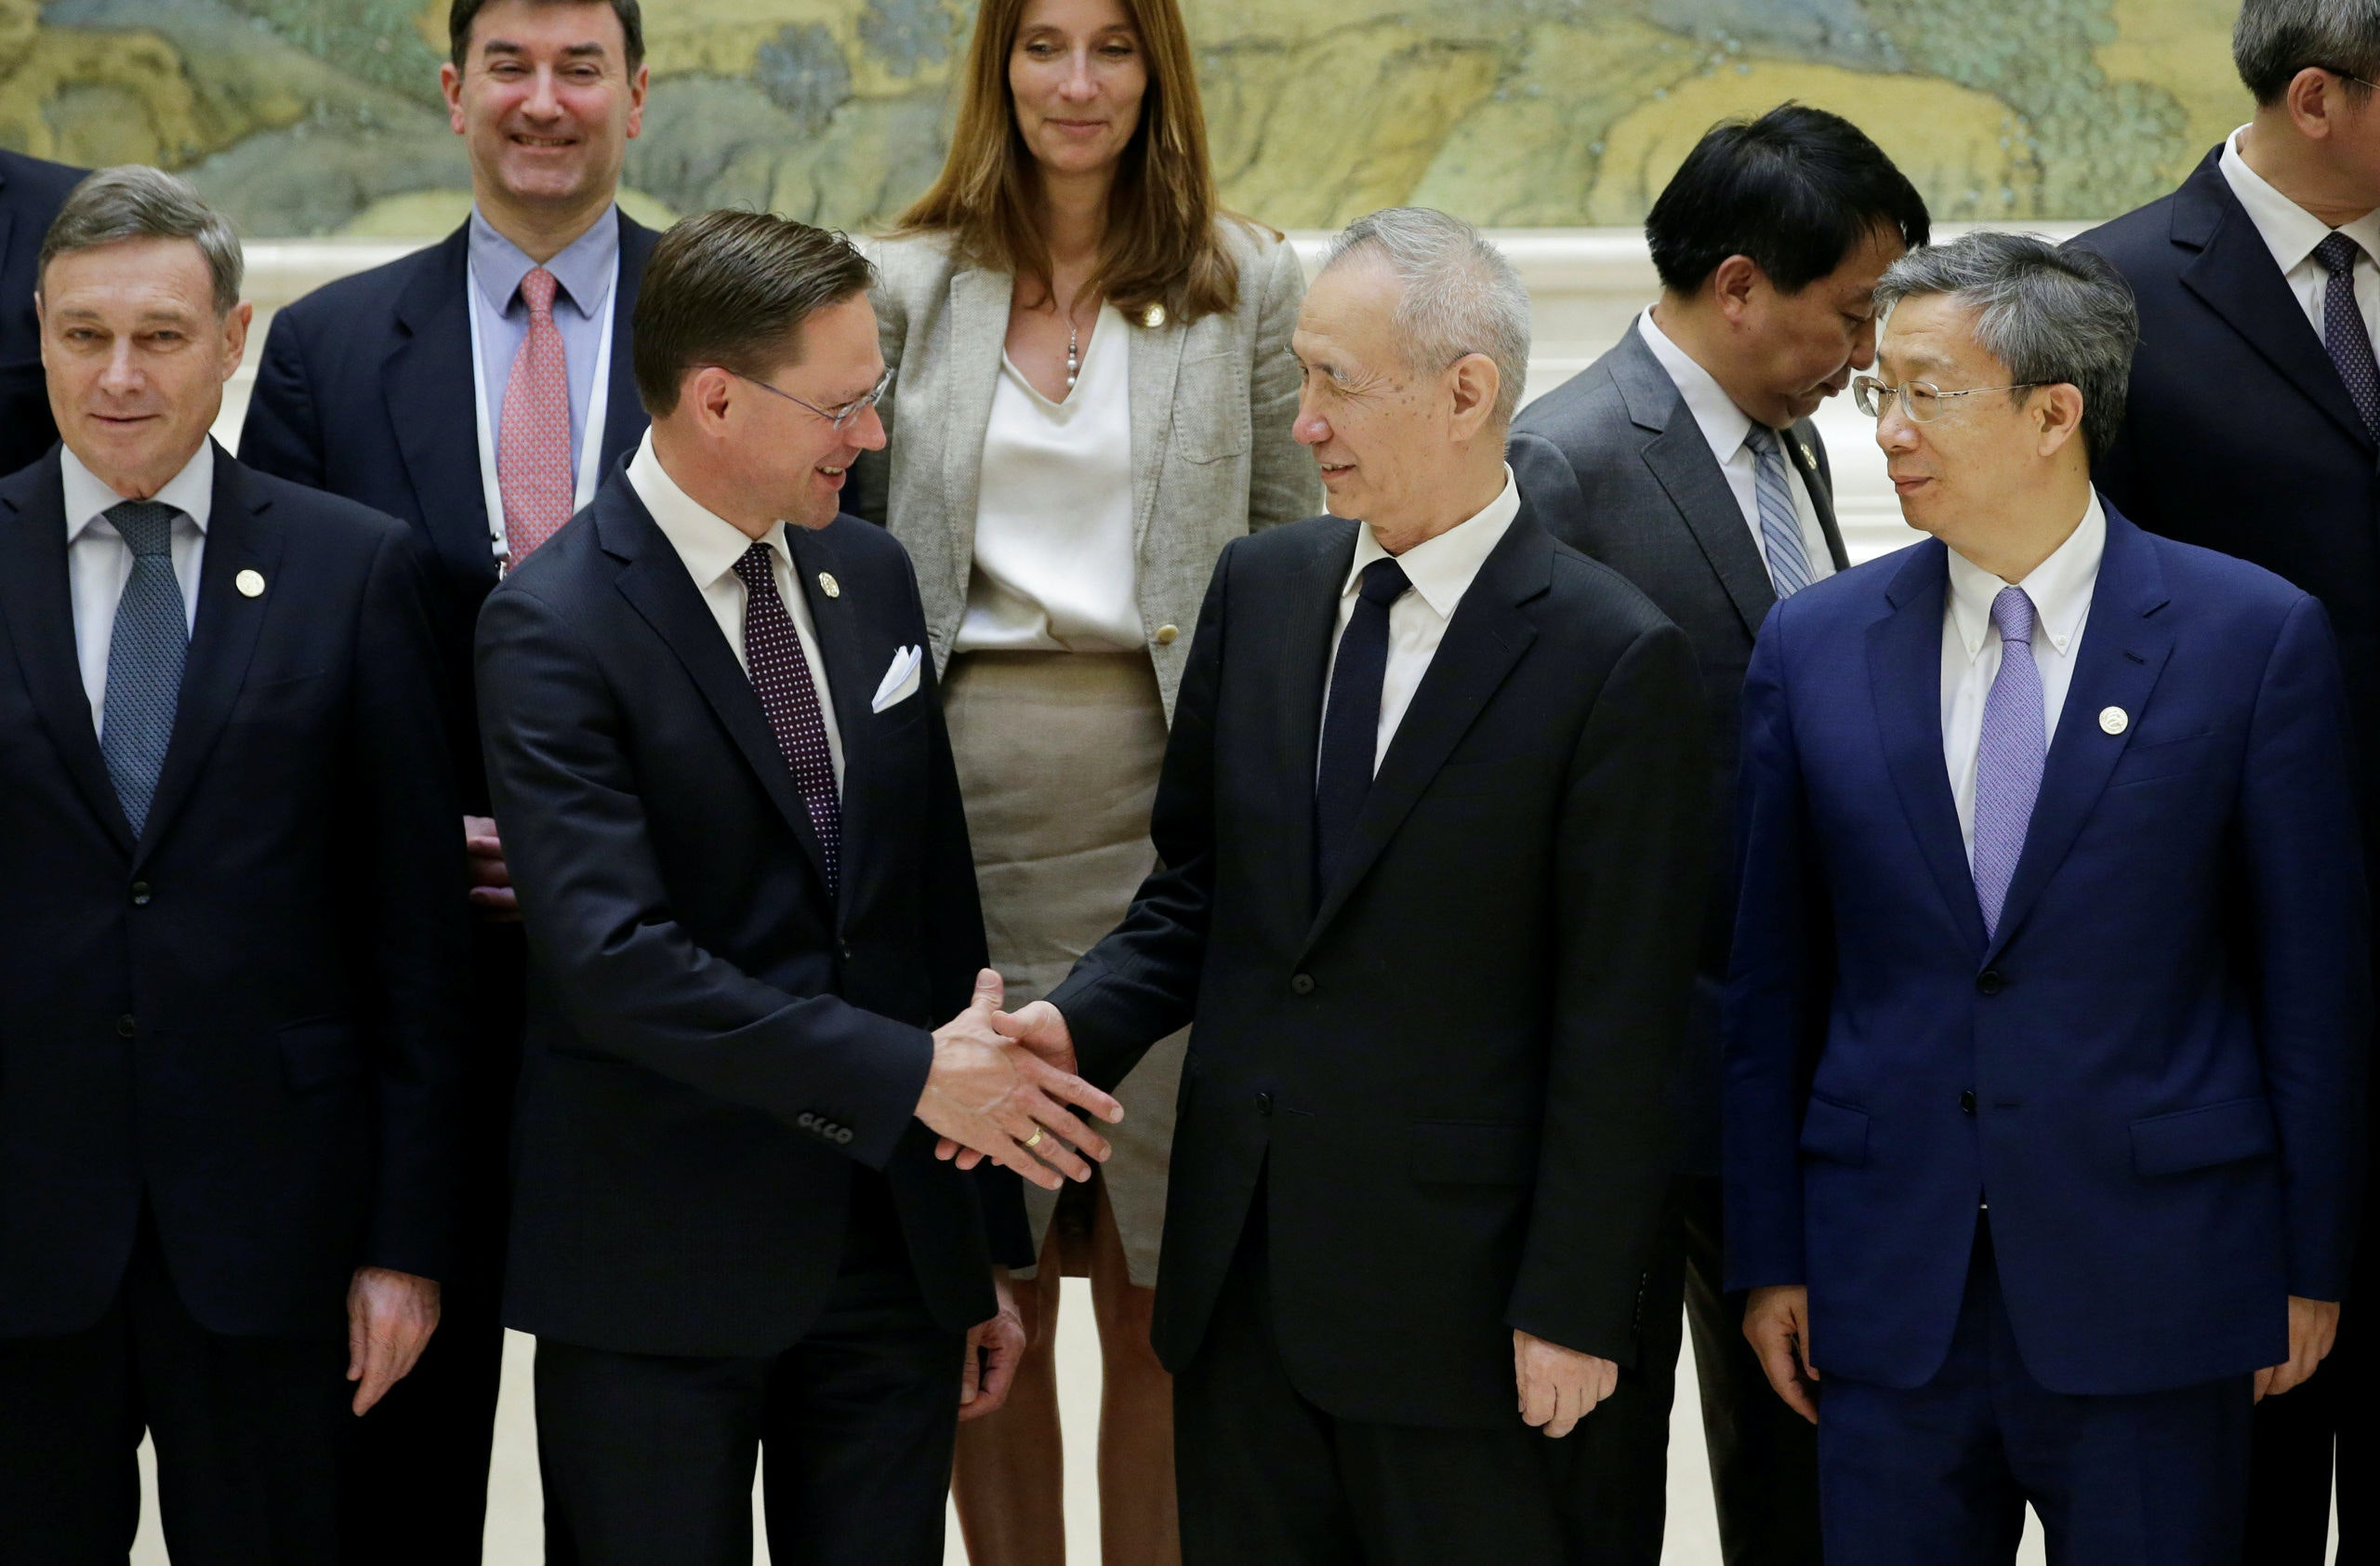 European Commission Vice President Jyrki Katainen shakes hands with Chinese Vice Premier Liu He, next to China's central bank governor Yi Gang after a group photo event during the EU-China High-level Economic Dialogue at Diaoyutai State Guesthouse in Beijing, China June 25, 2018. REUTERS/Jason Lee